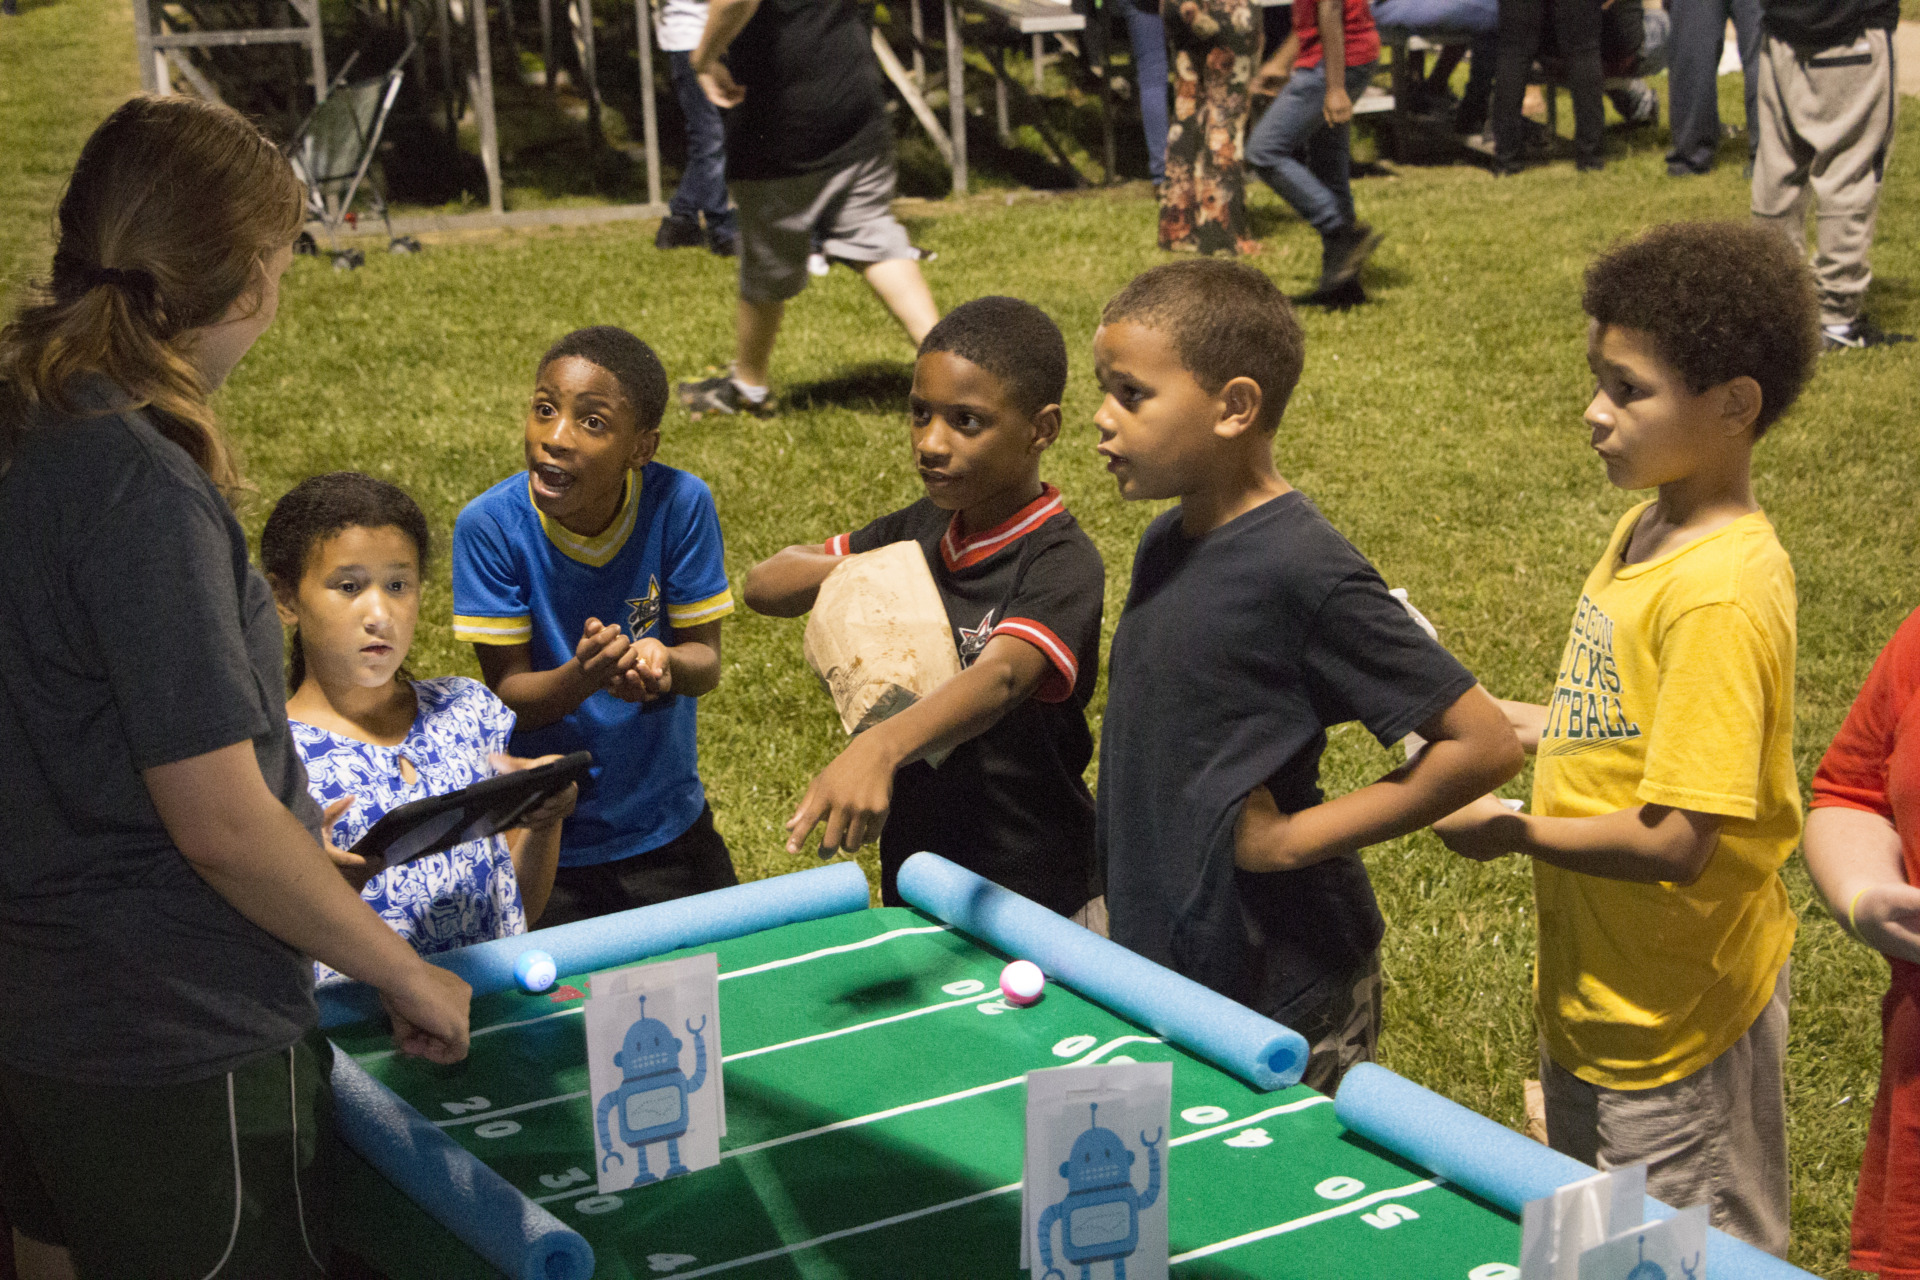 children playing table football game at tailgate